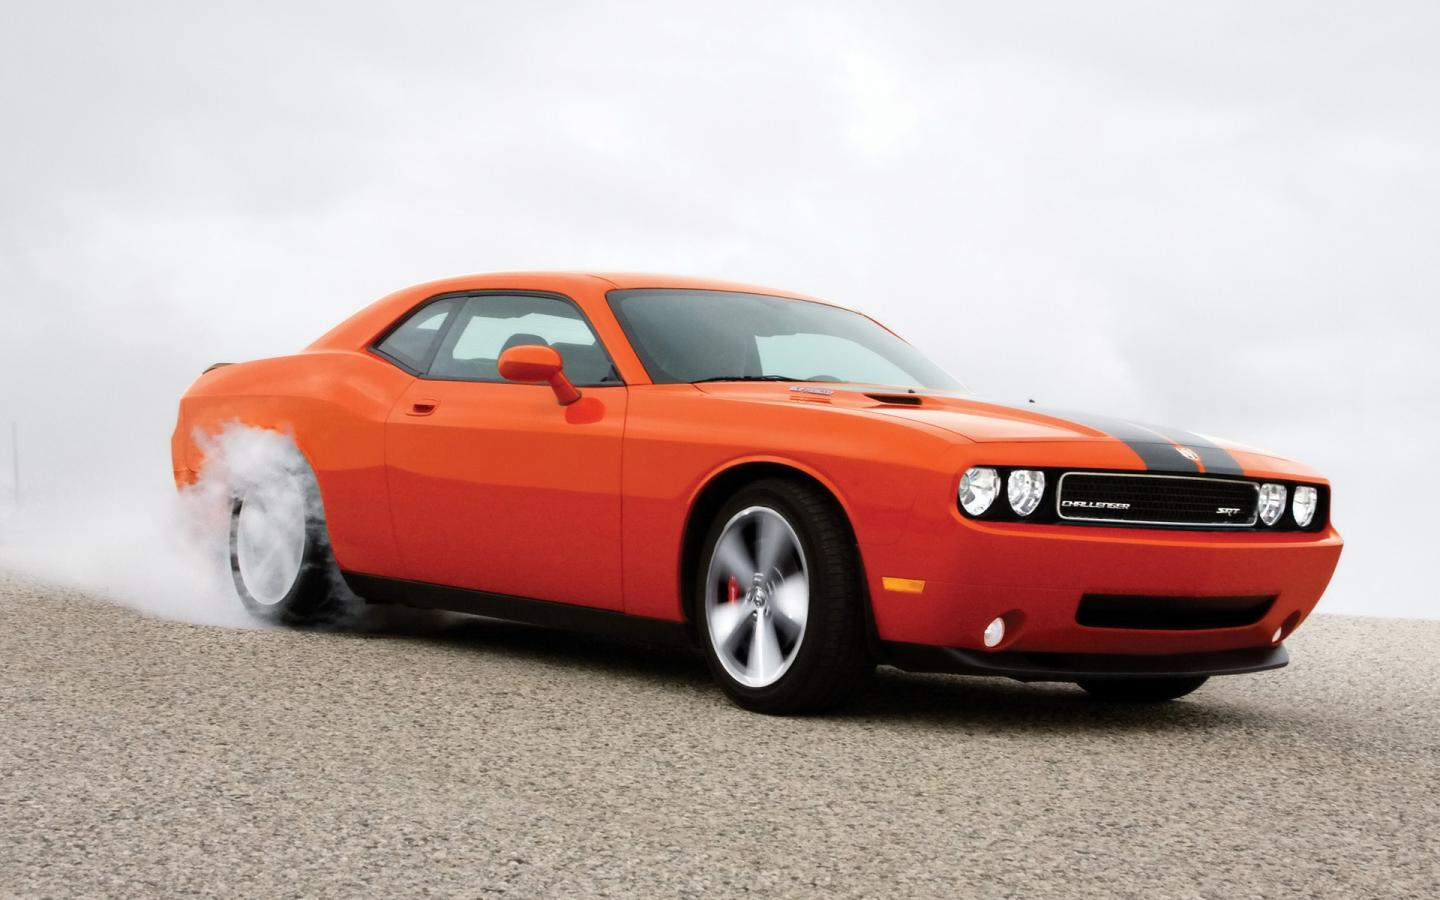 2008 Dodge Challenger Srt8 Burnout Side Angle 1440x900